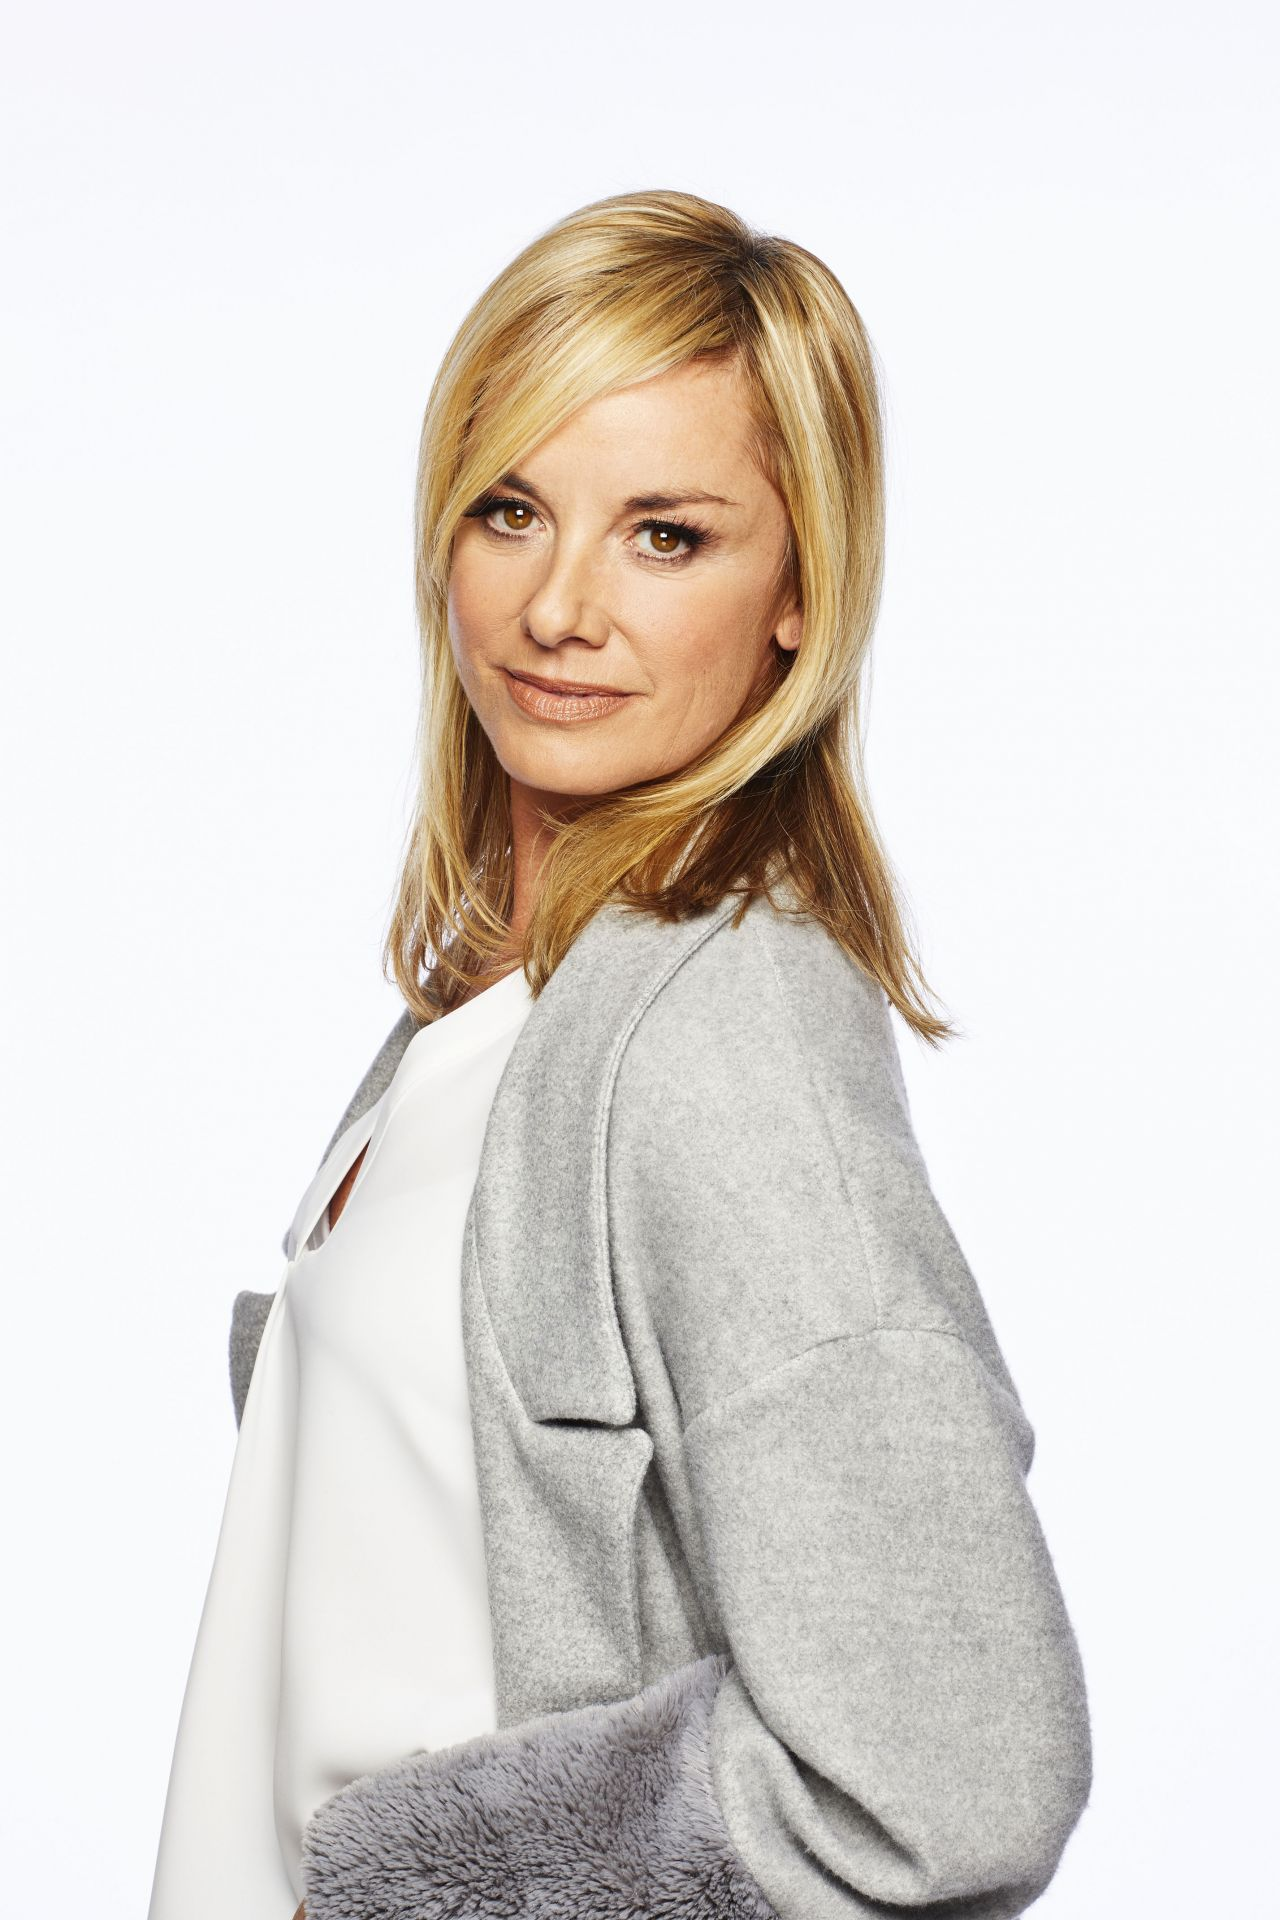 tamzin outhwaite - photo #19